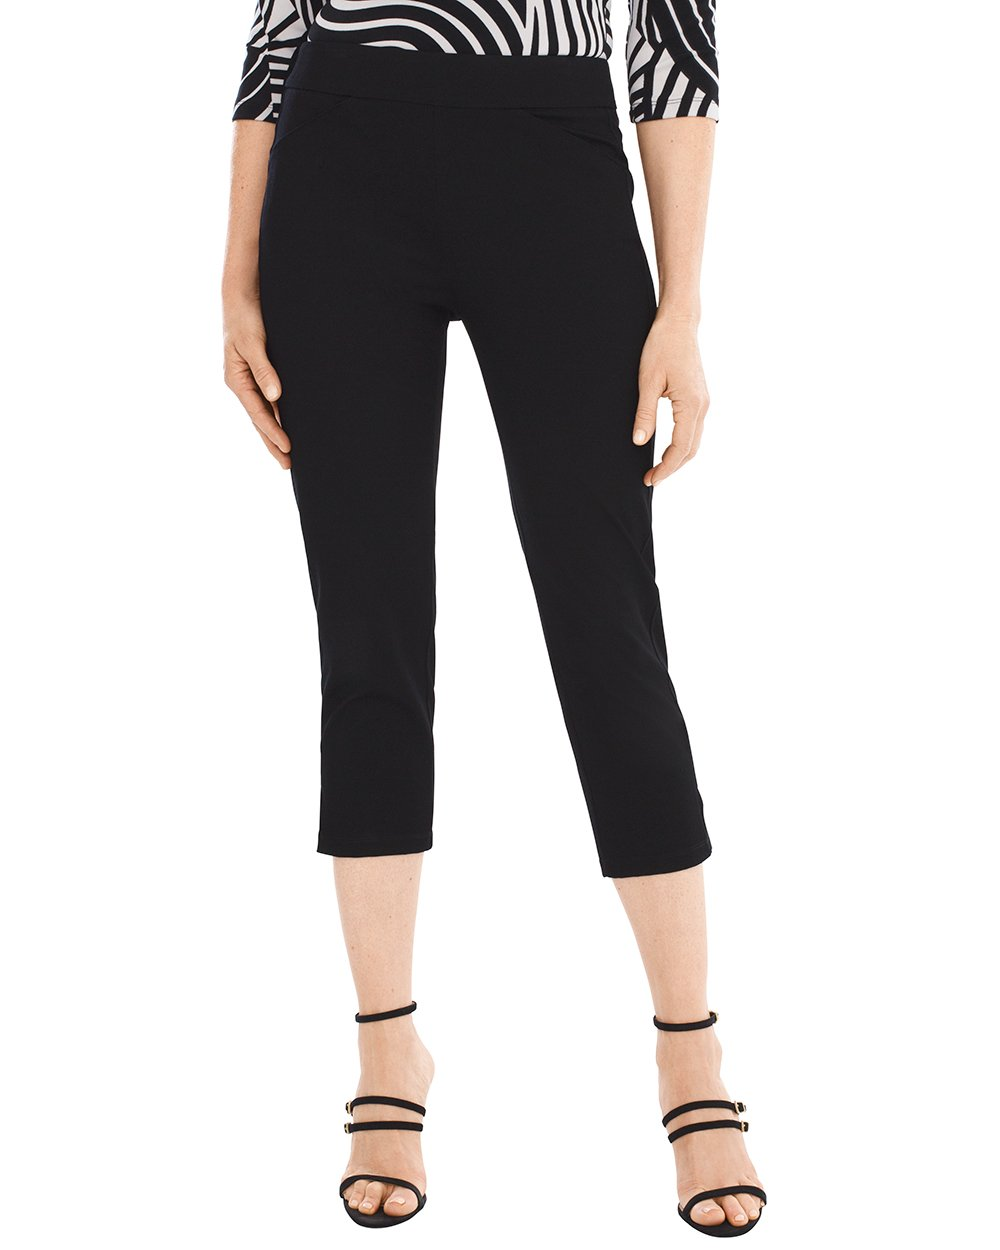 Chico's Women's Travelers Collection Crepe Crop Pants Size 16/18 XL (3) Black